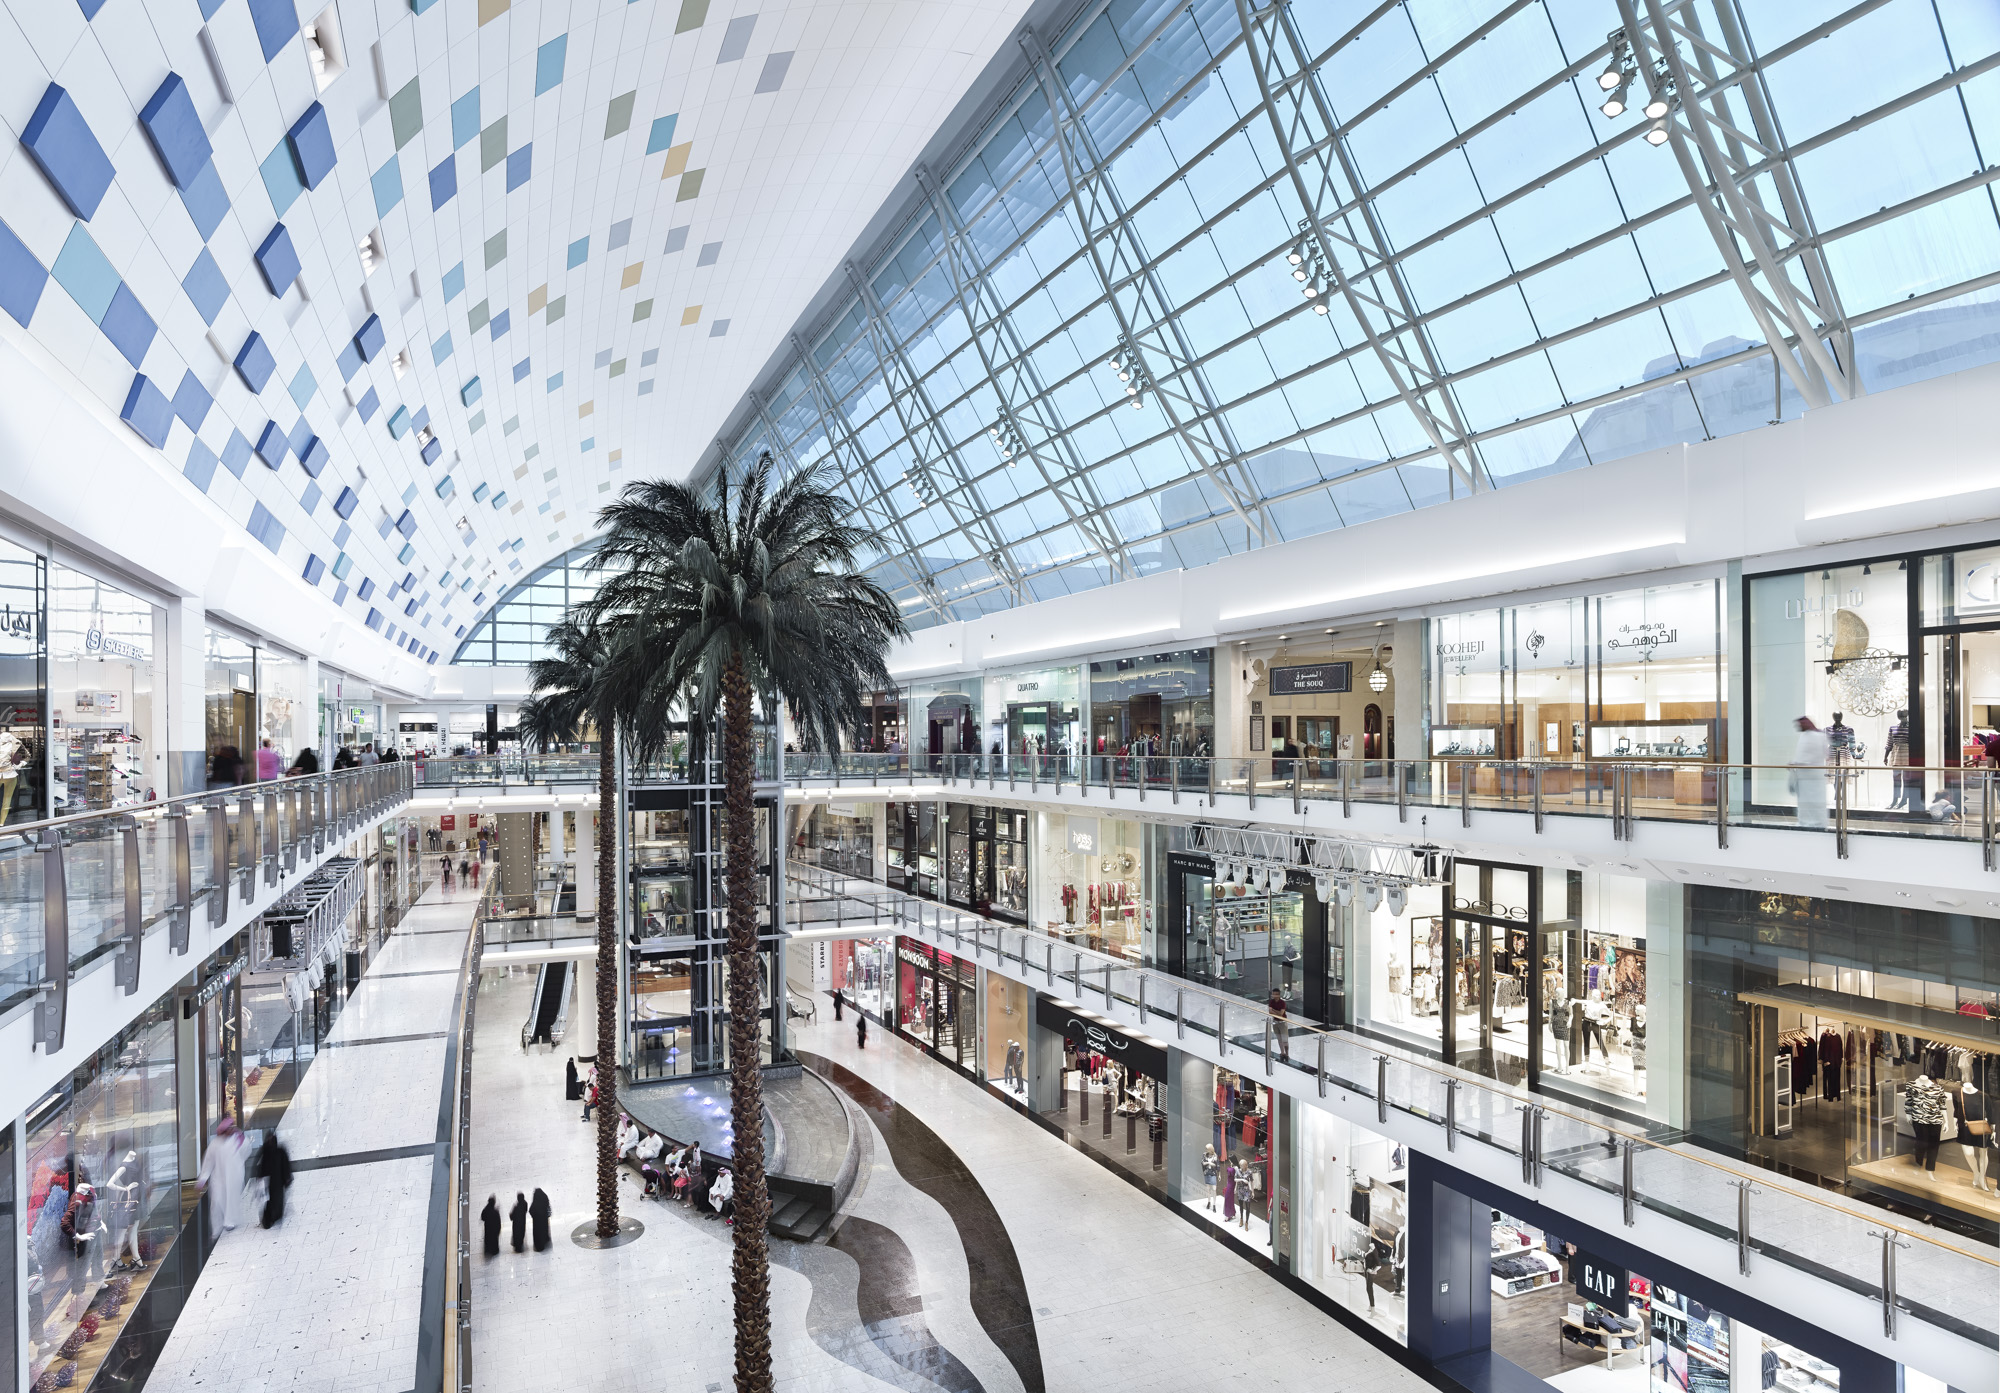 City Centre Bahrain further diversifies its retail offering with 22 new outlets